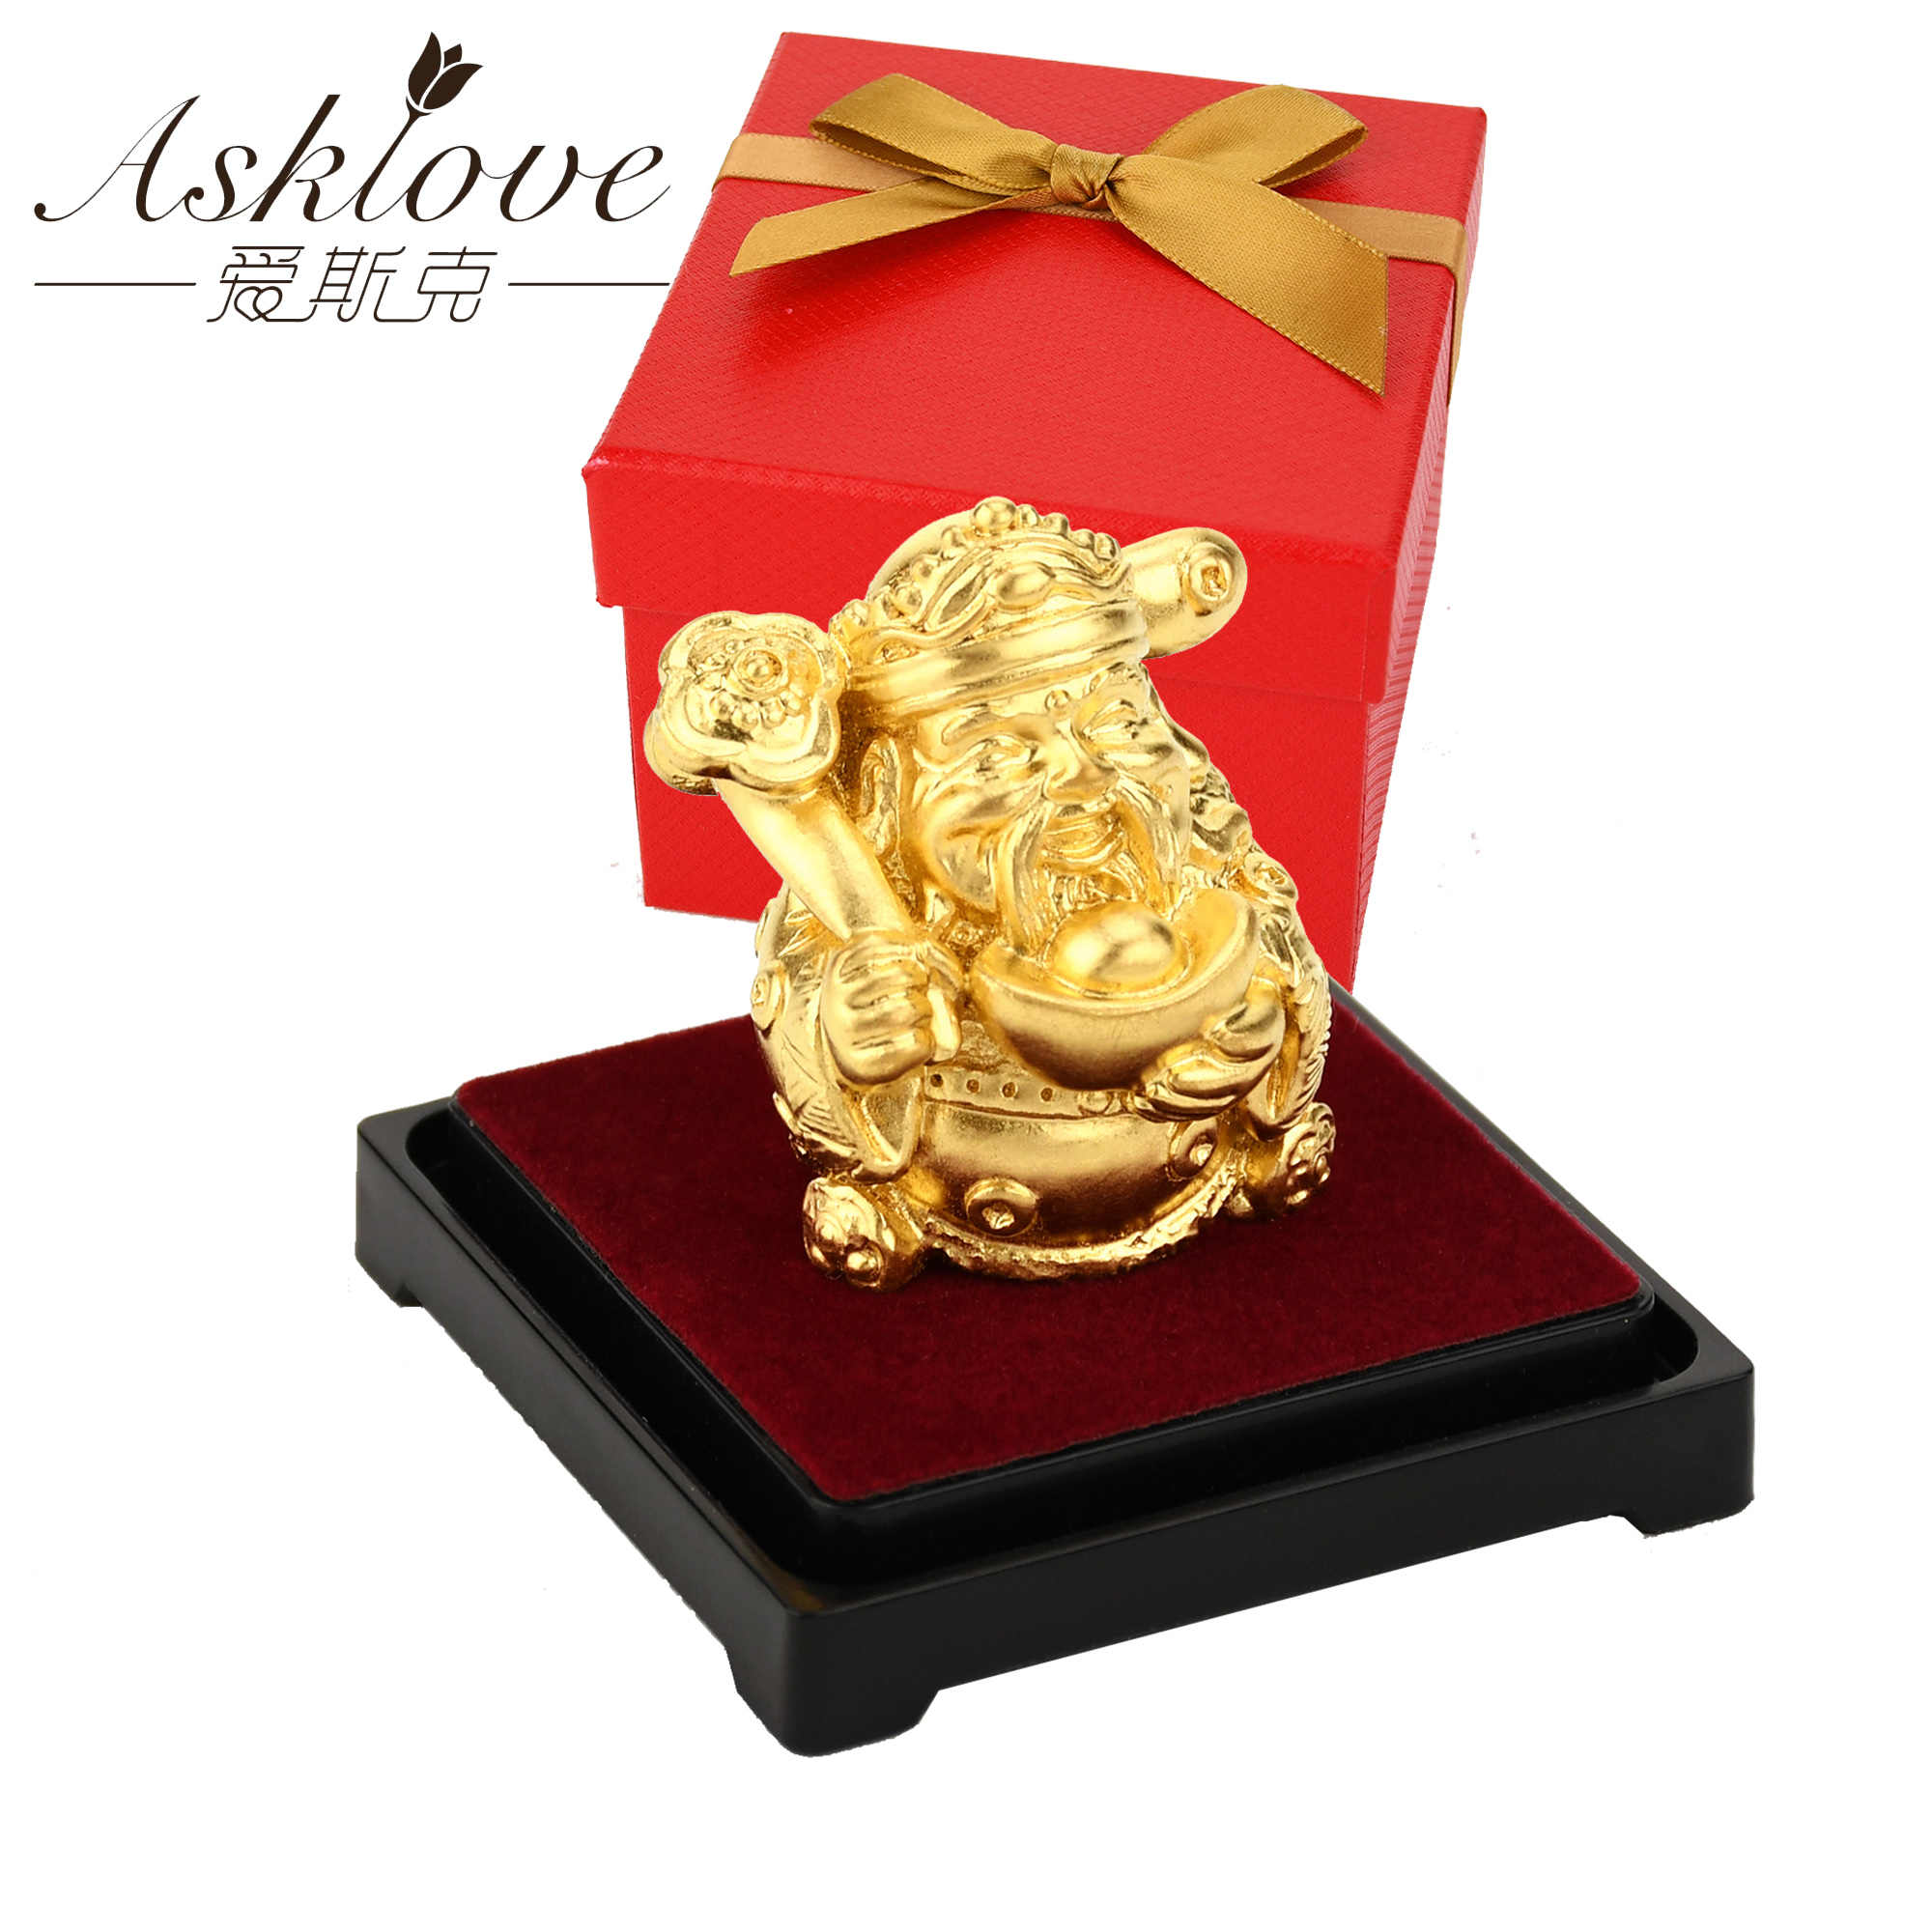 The god of wealth Feng shui decor 24K Gold Foil Statue Wealth God Office Ornament Crafts Collect Wealth Home Office Decoration